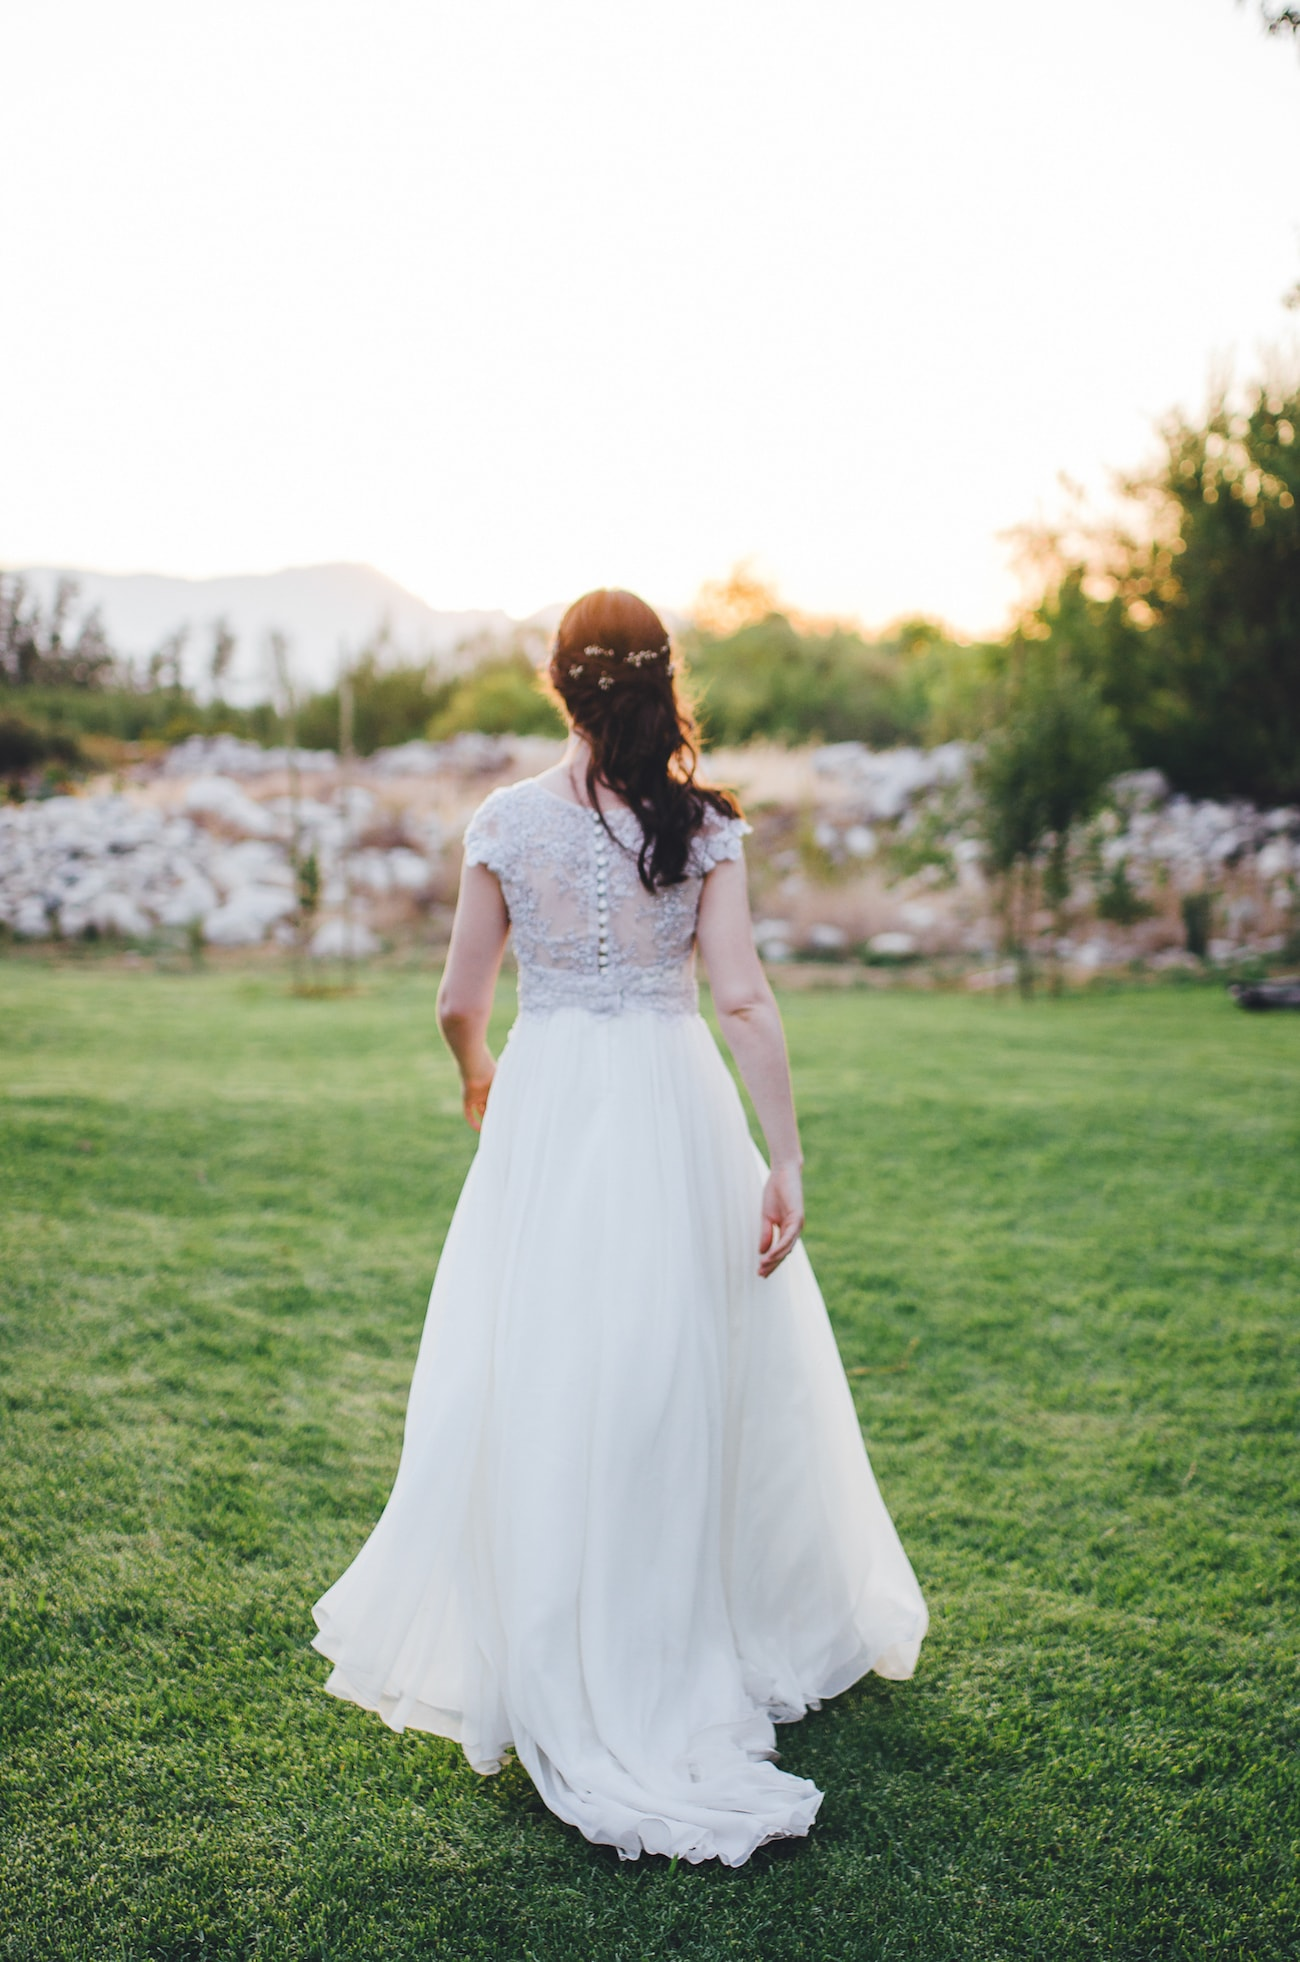 Robyn Roberts Grey Lace Wedding Dress | Credit: Yeah Yeah Photography